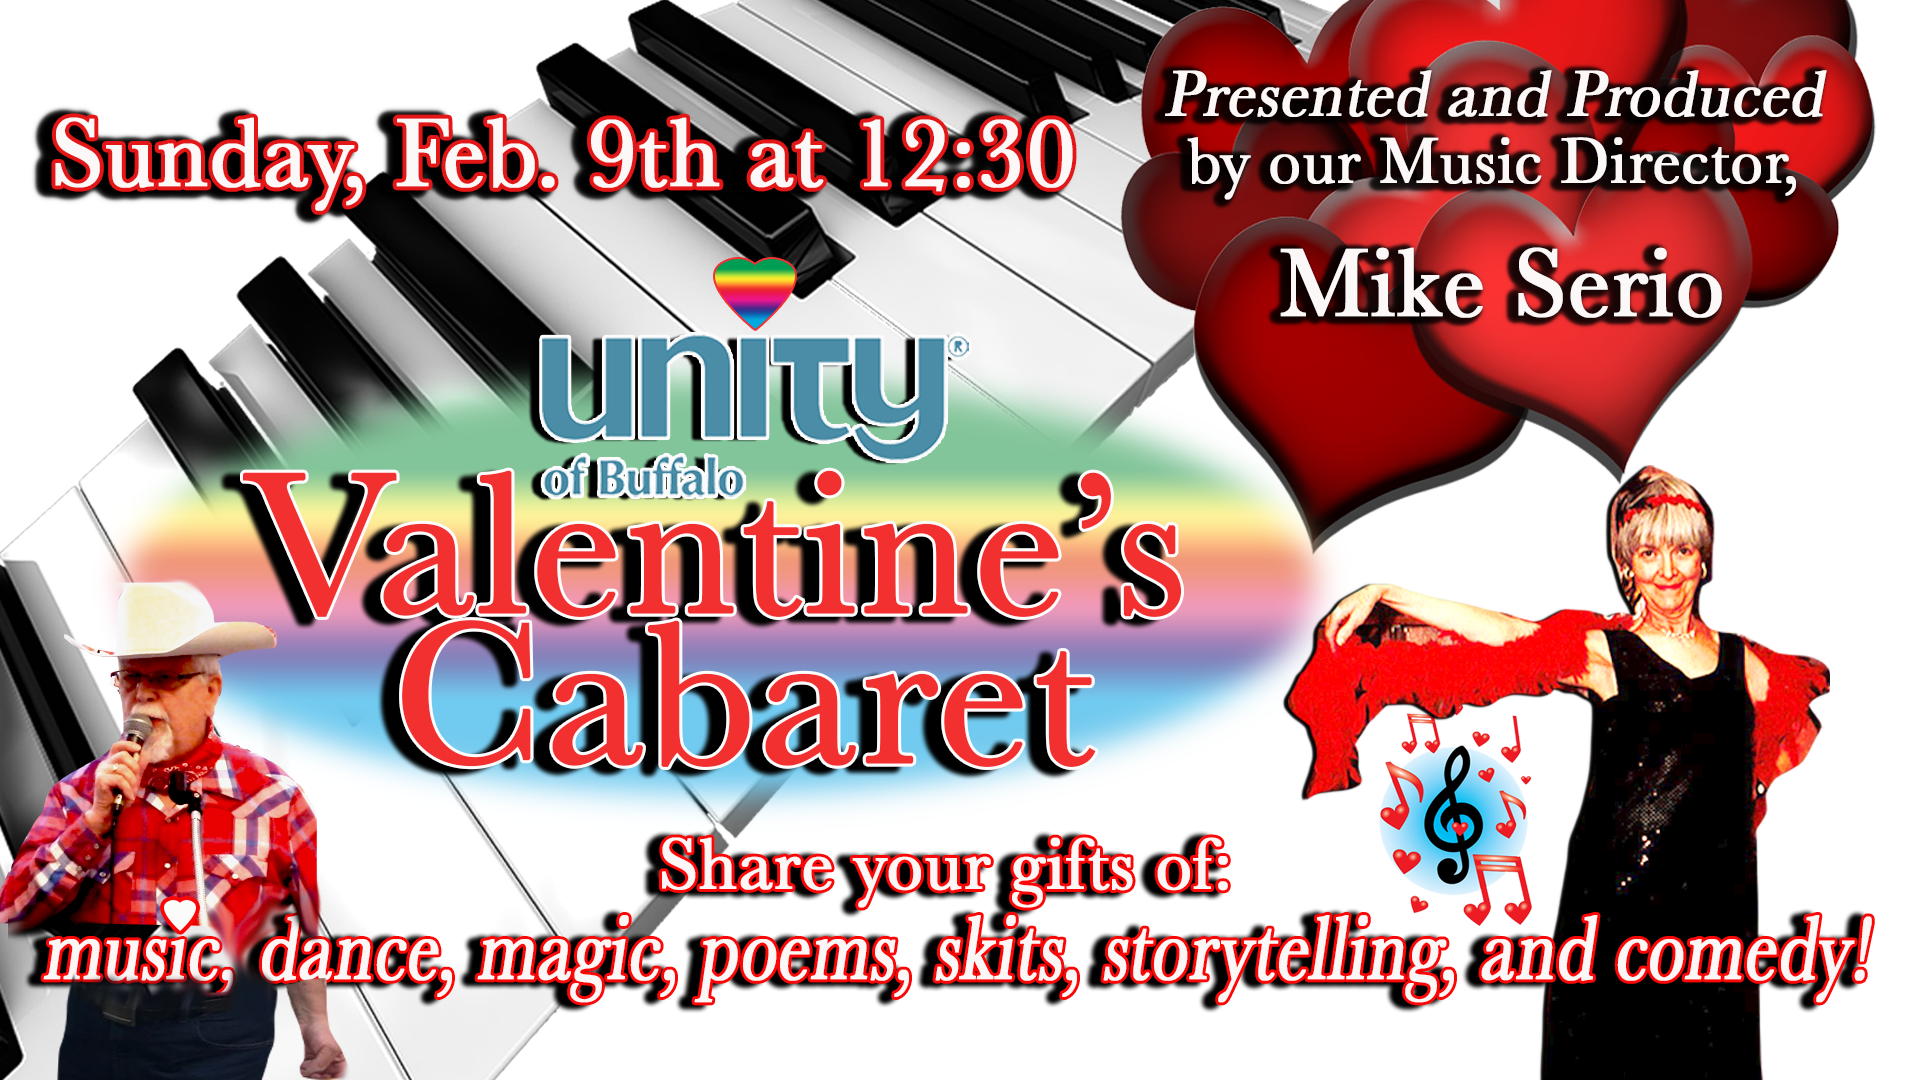 Valentine's Cabaret at Unity of Buffalo